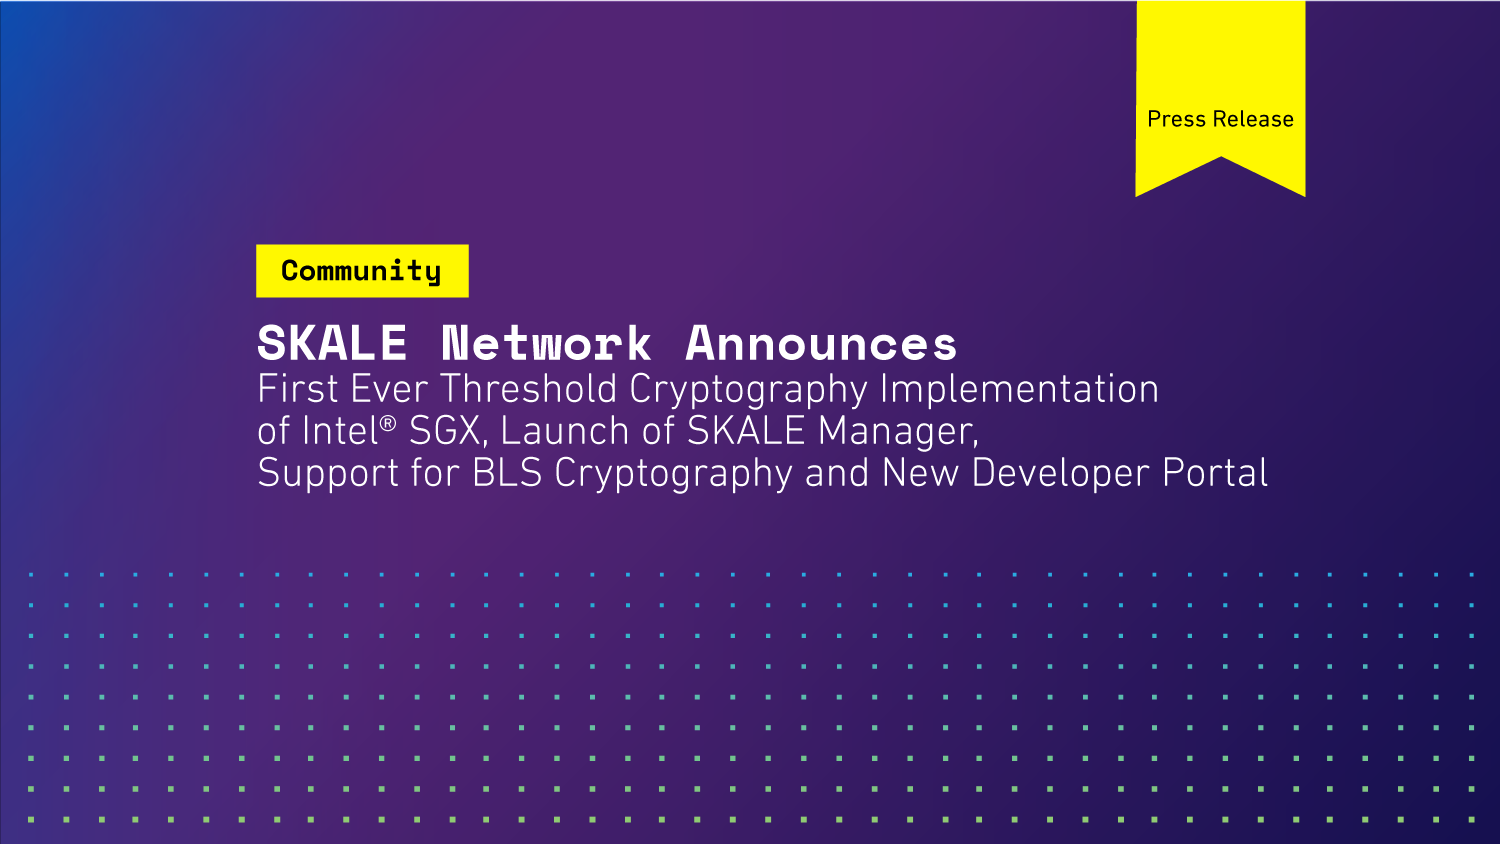 SKALE announces first ever threshold cryptography implementation Intel® SGX, launch of SKALE Manager, support for BLS Cryptography and new developer portal.